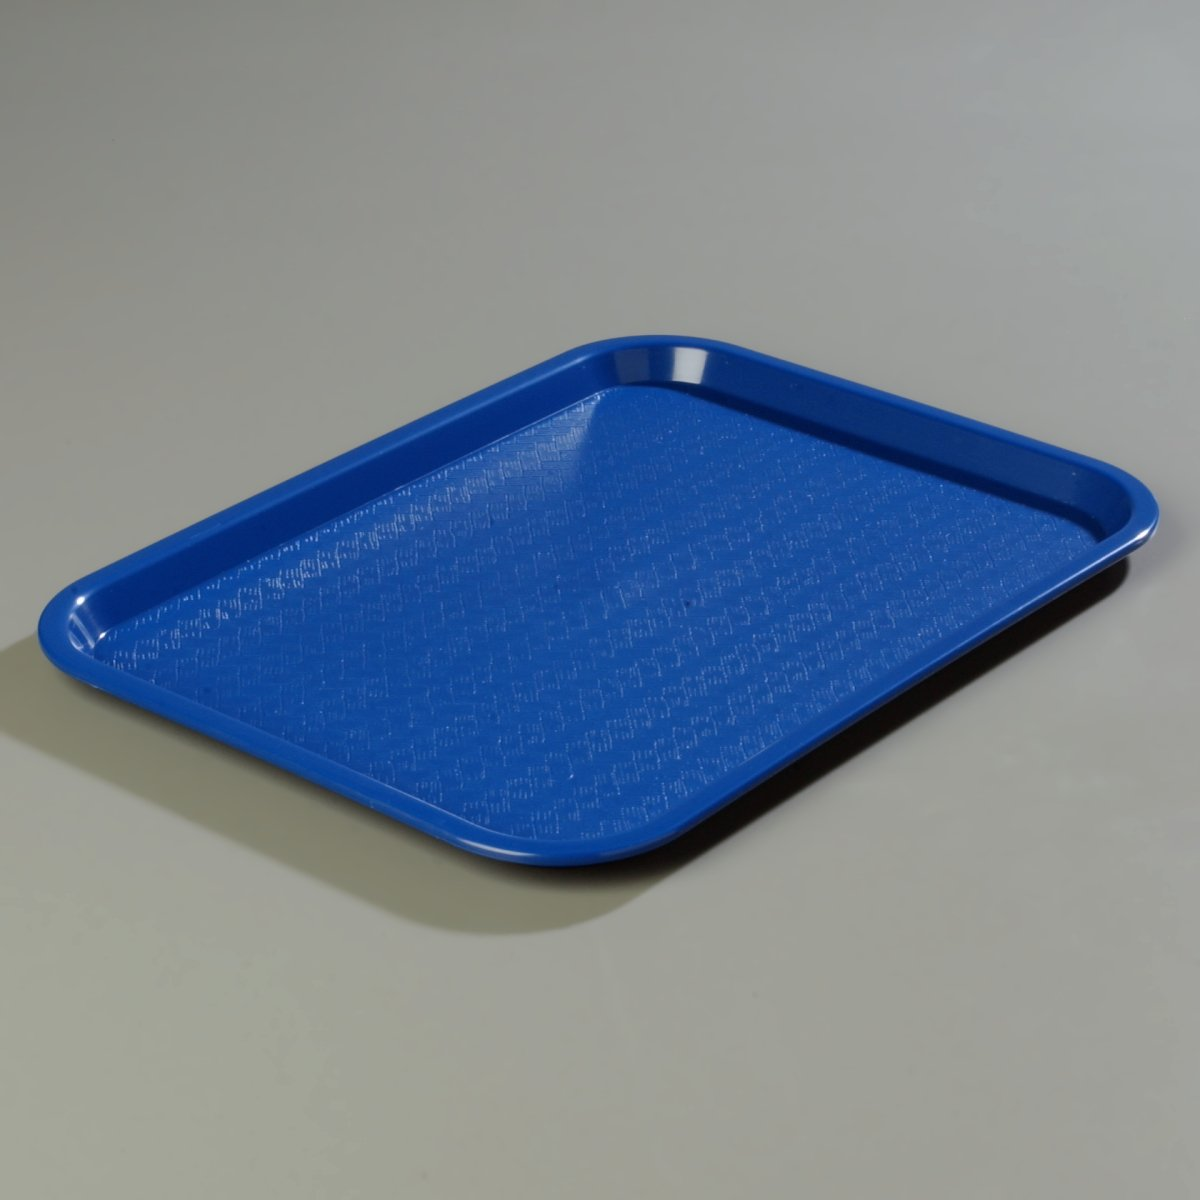 Carlisle CT141814 Café Standard Cafeteria / Fast Food Tray, 14'' x 18'', Blue (Pack of 12) by Carlisle (Image #9)